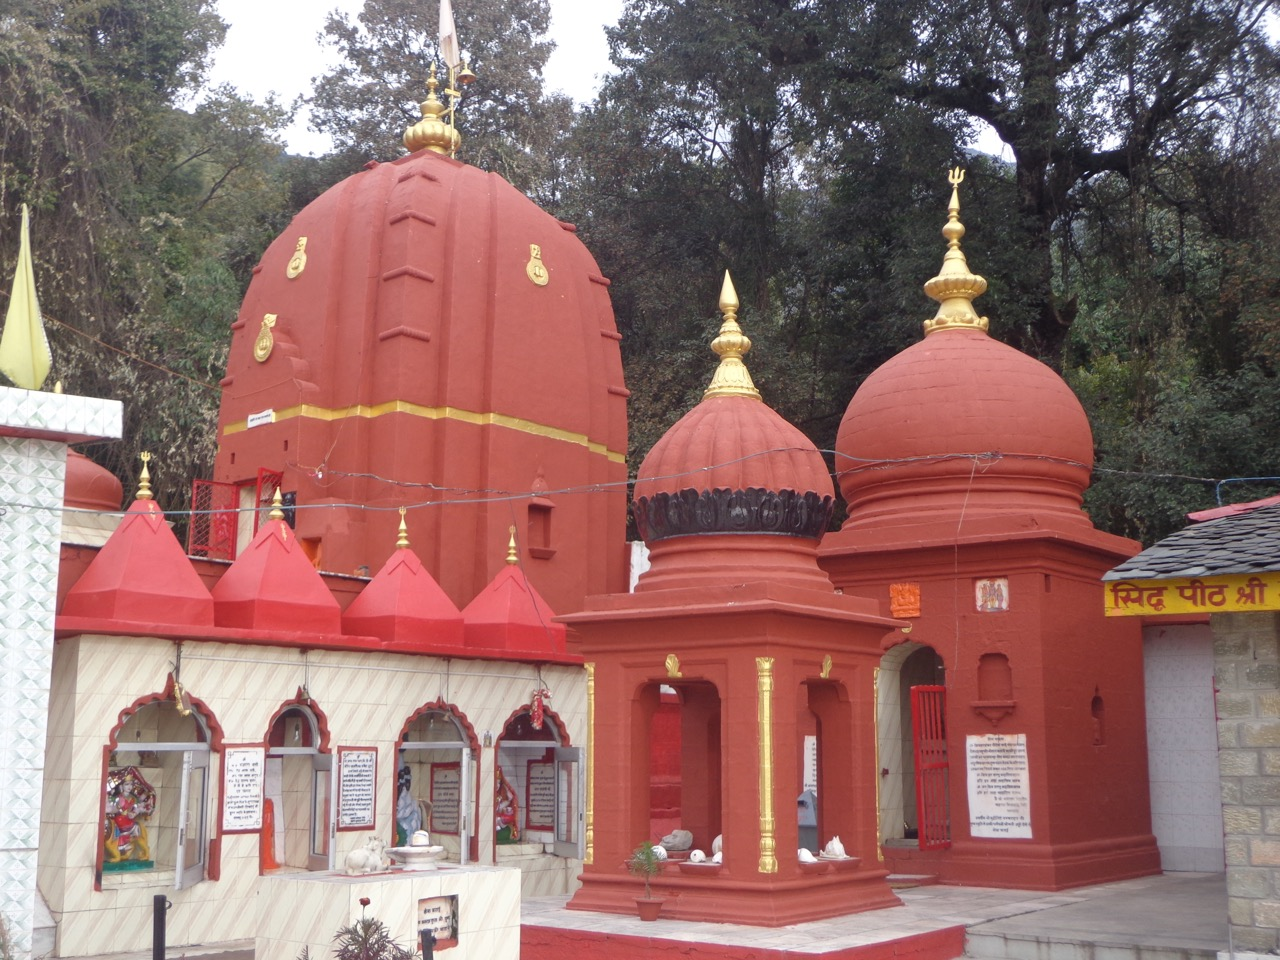 The Aghanjar temple complex has many smaller temples dedicated to various deities and saints.